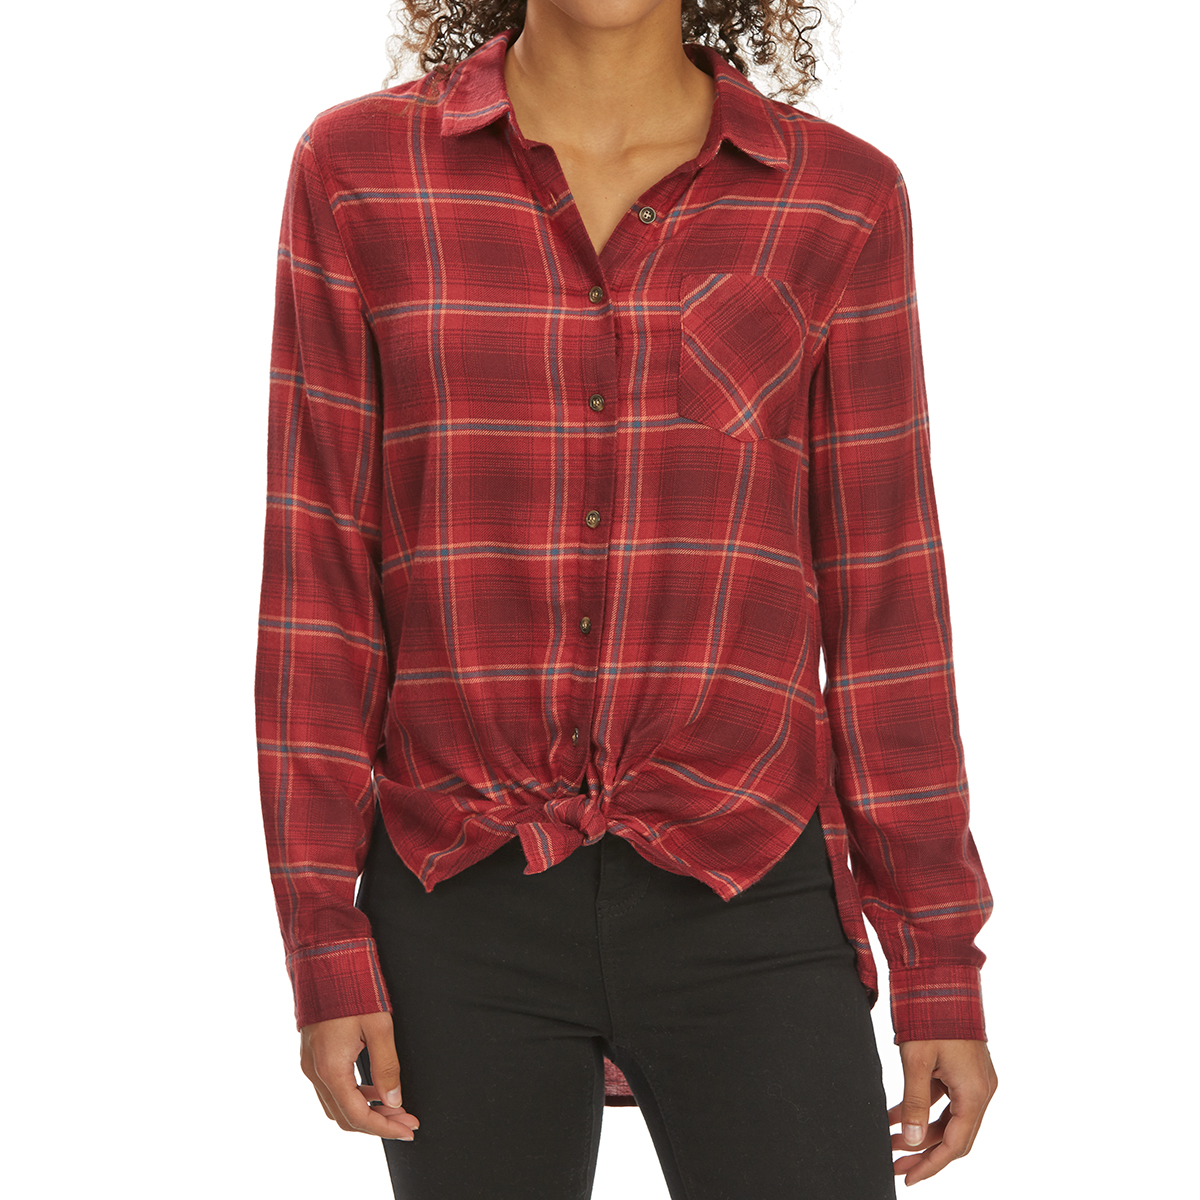 Pink Rose Juniors' Tie-Front Brushed Plaid Long-Sleeve Flannel Shirt - Red, S